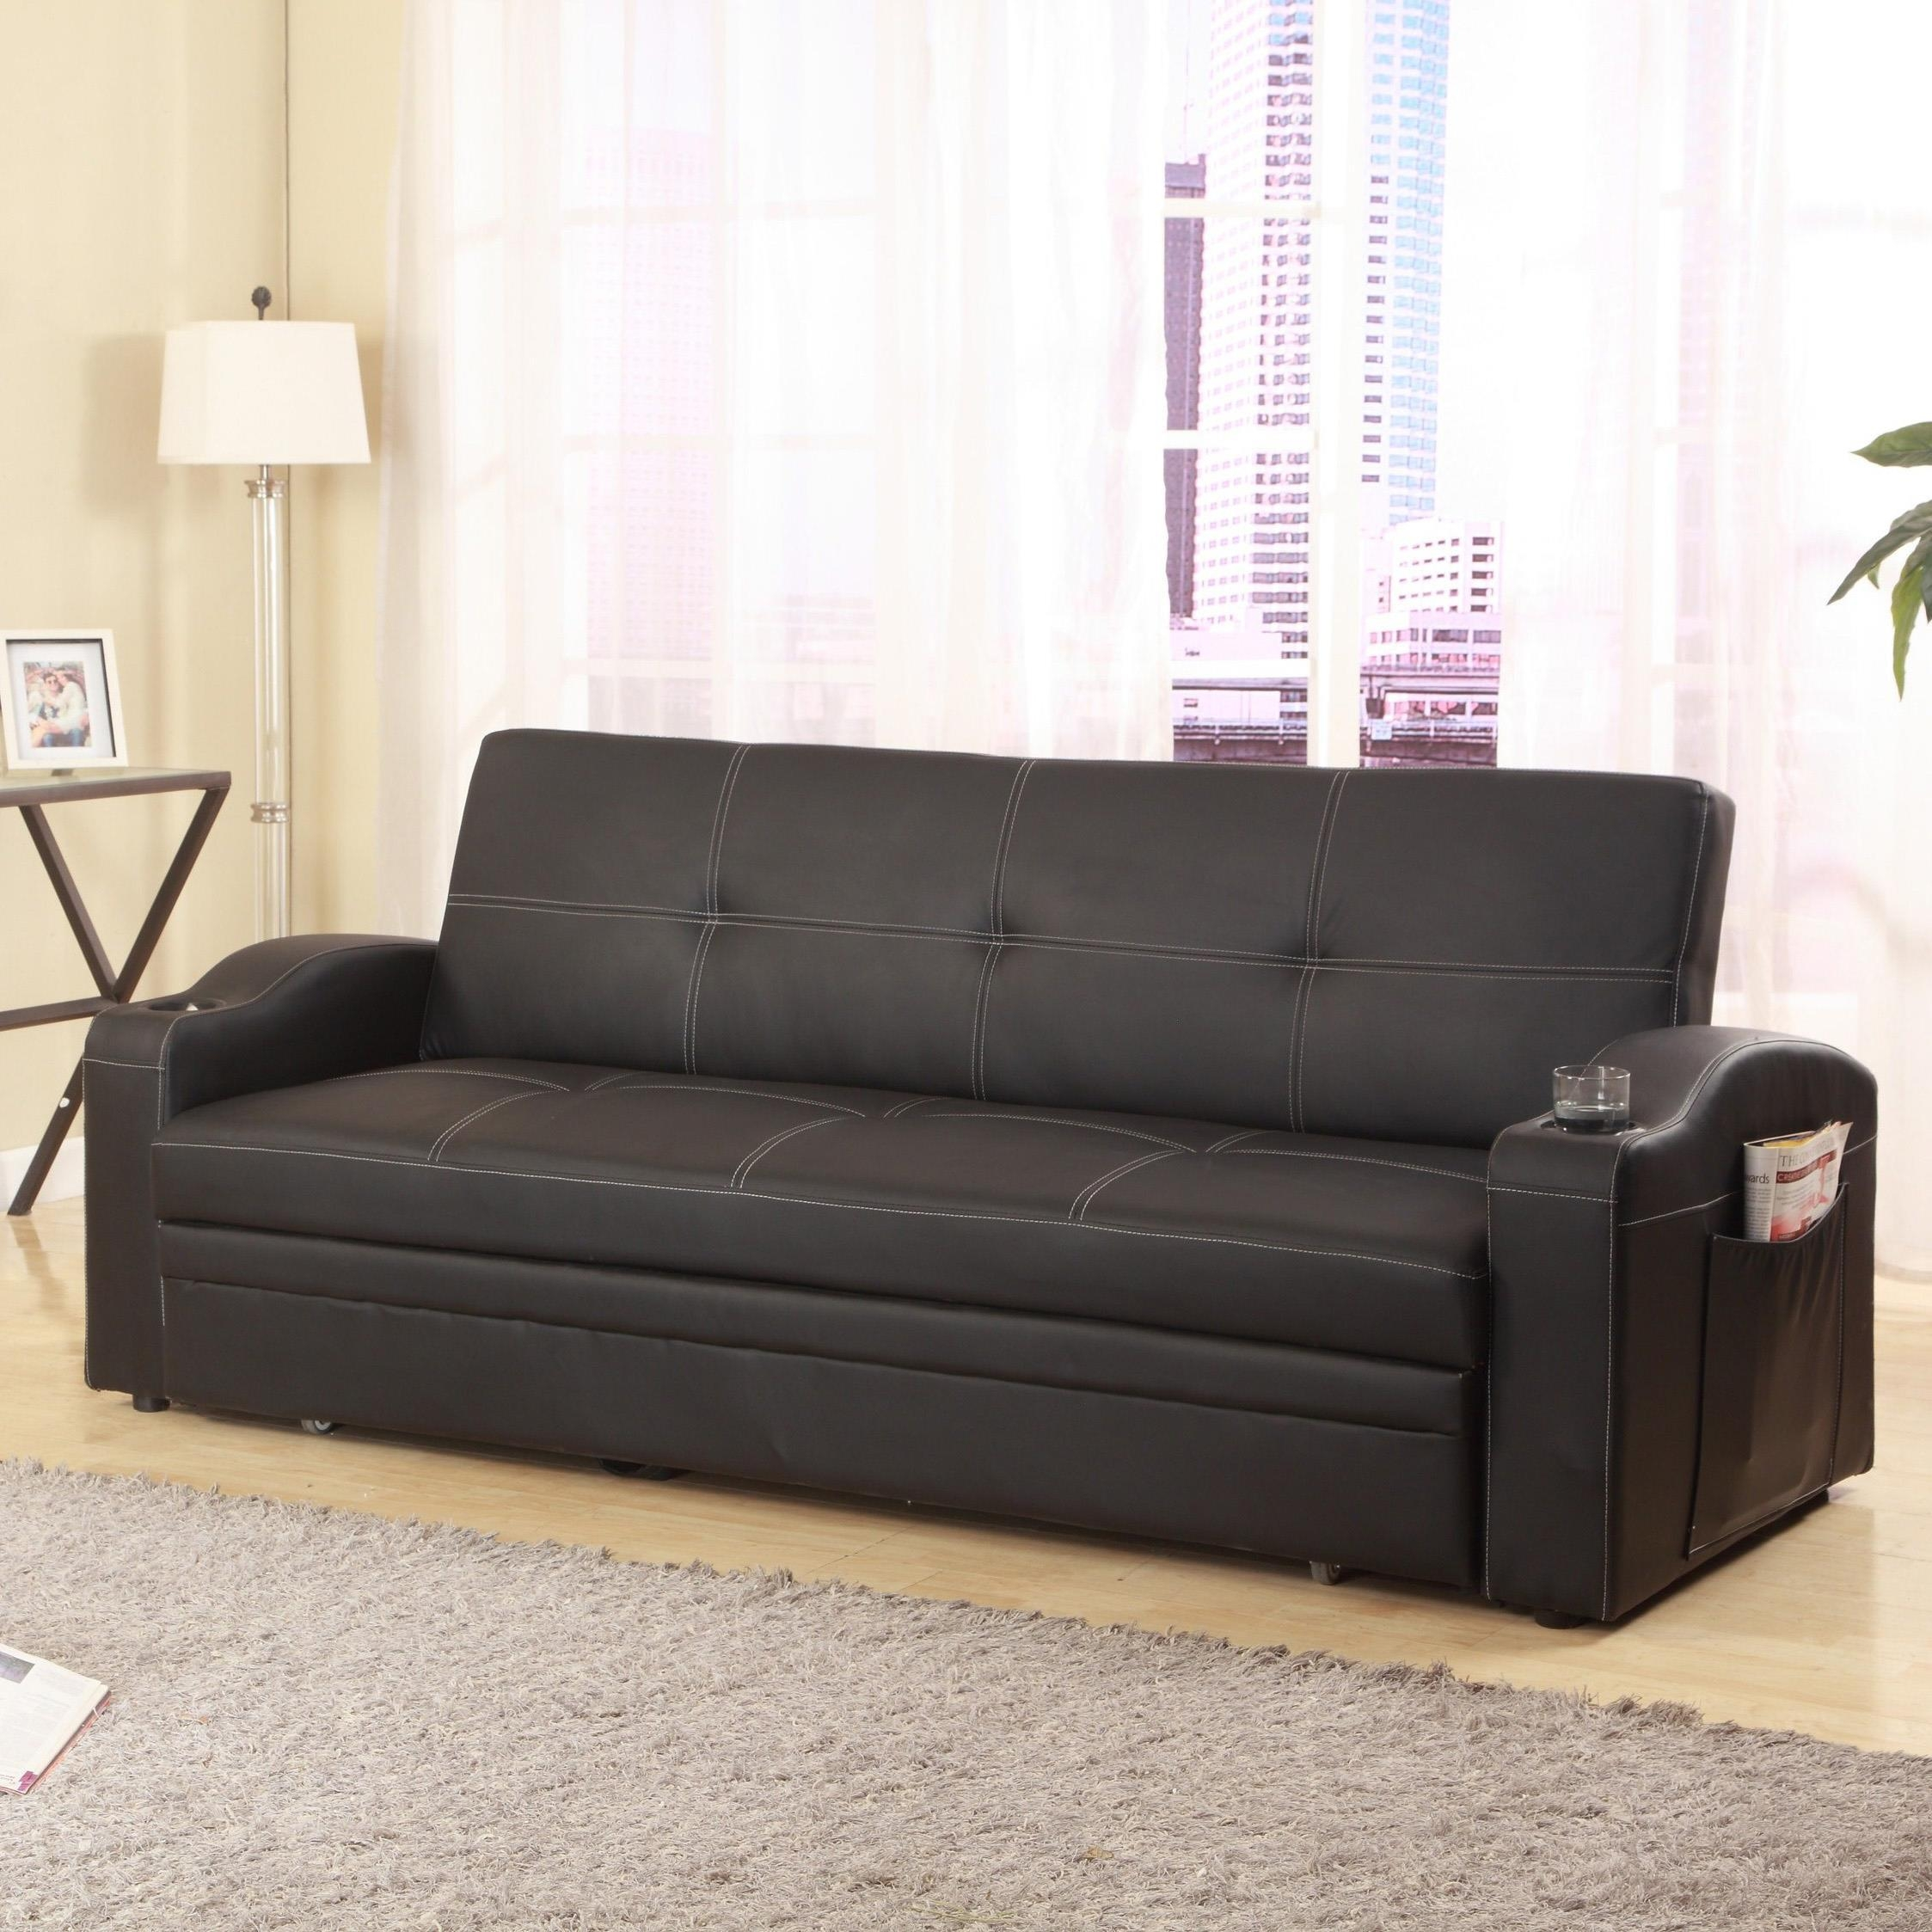 Crown Mark 5310 Easton Adjustable Sofa With Cup Holders And Pull In Sofas With Cup Holders (Image 3 of 20)